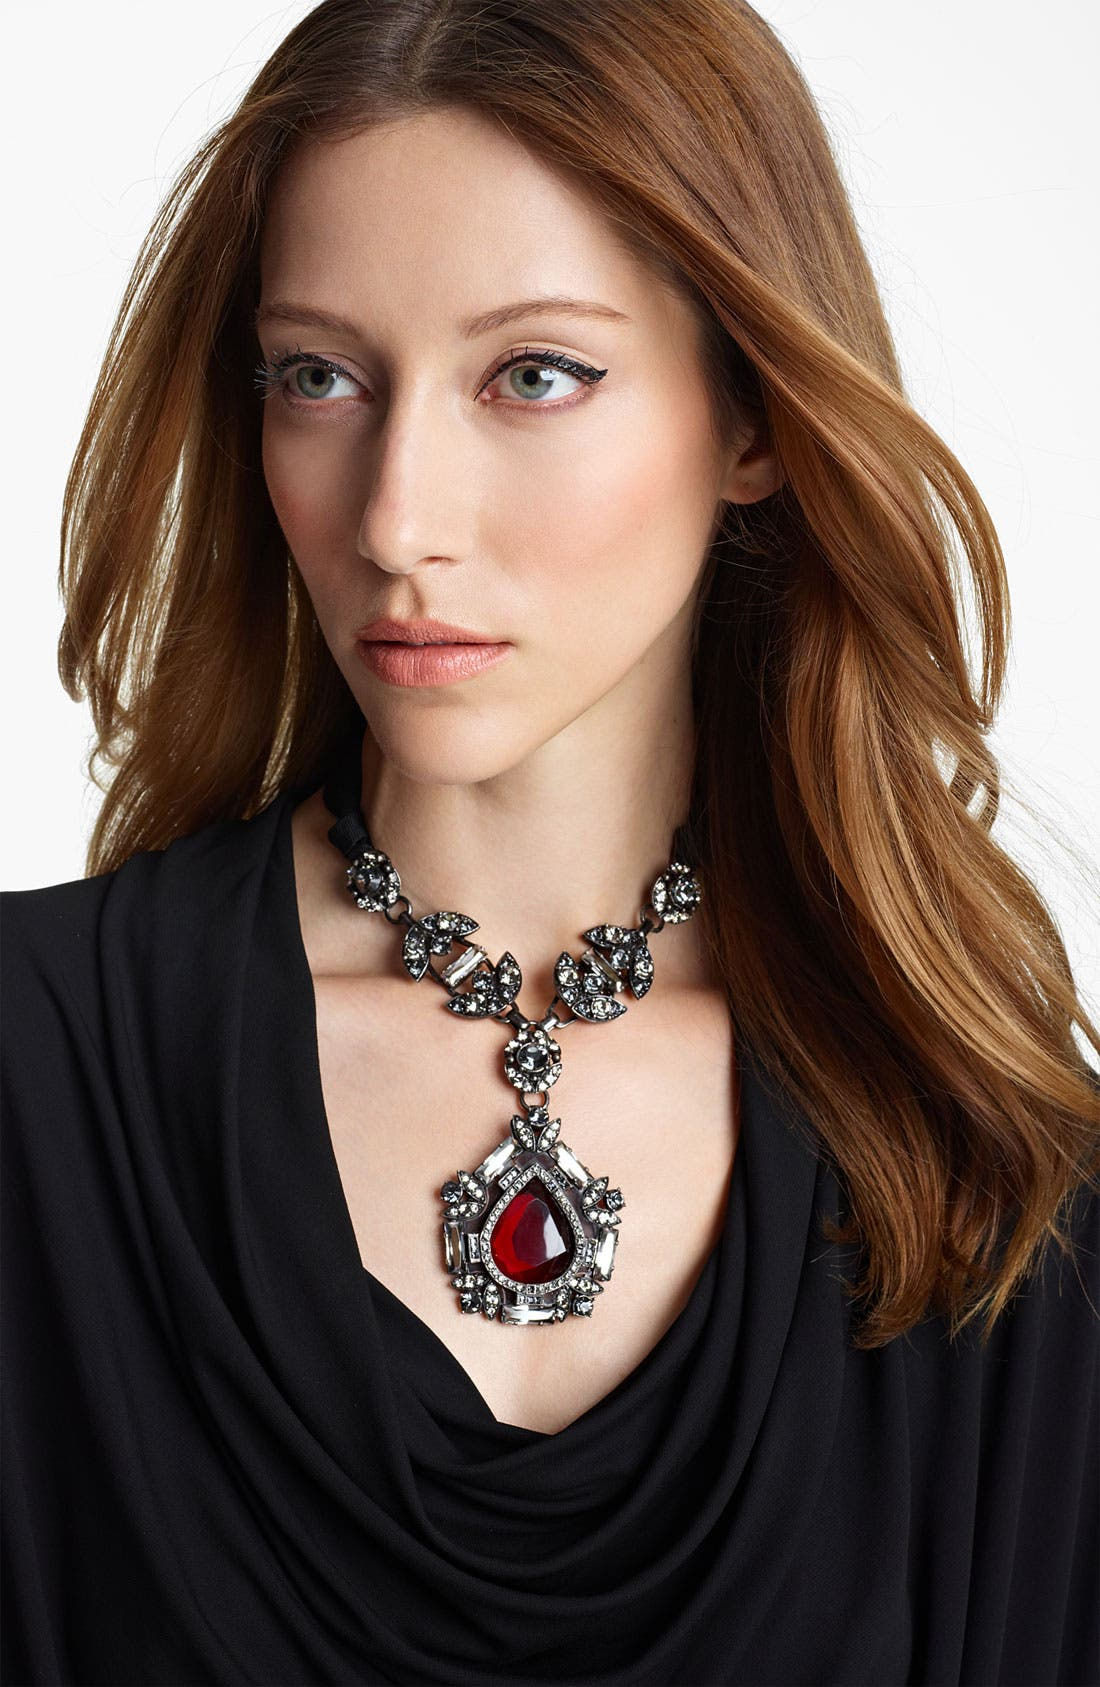 Alternate Image 1 Selected - Lanvin Small Pendant Necklace